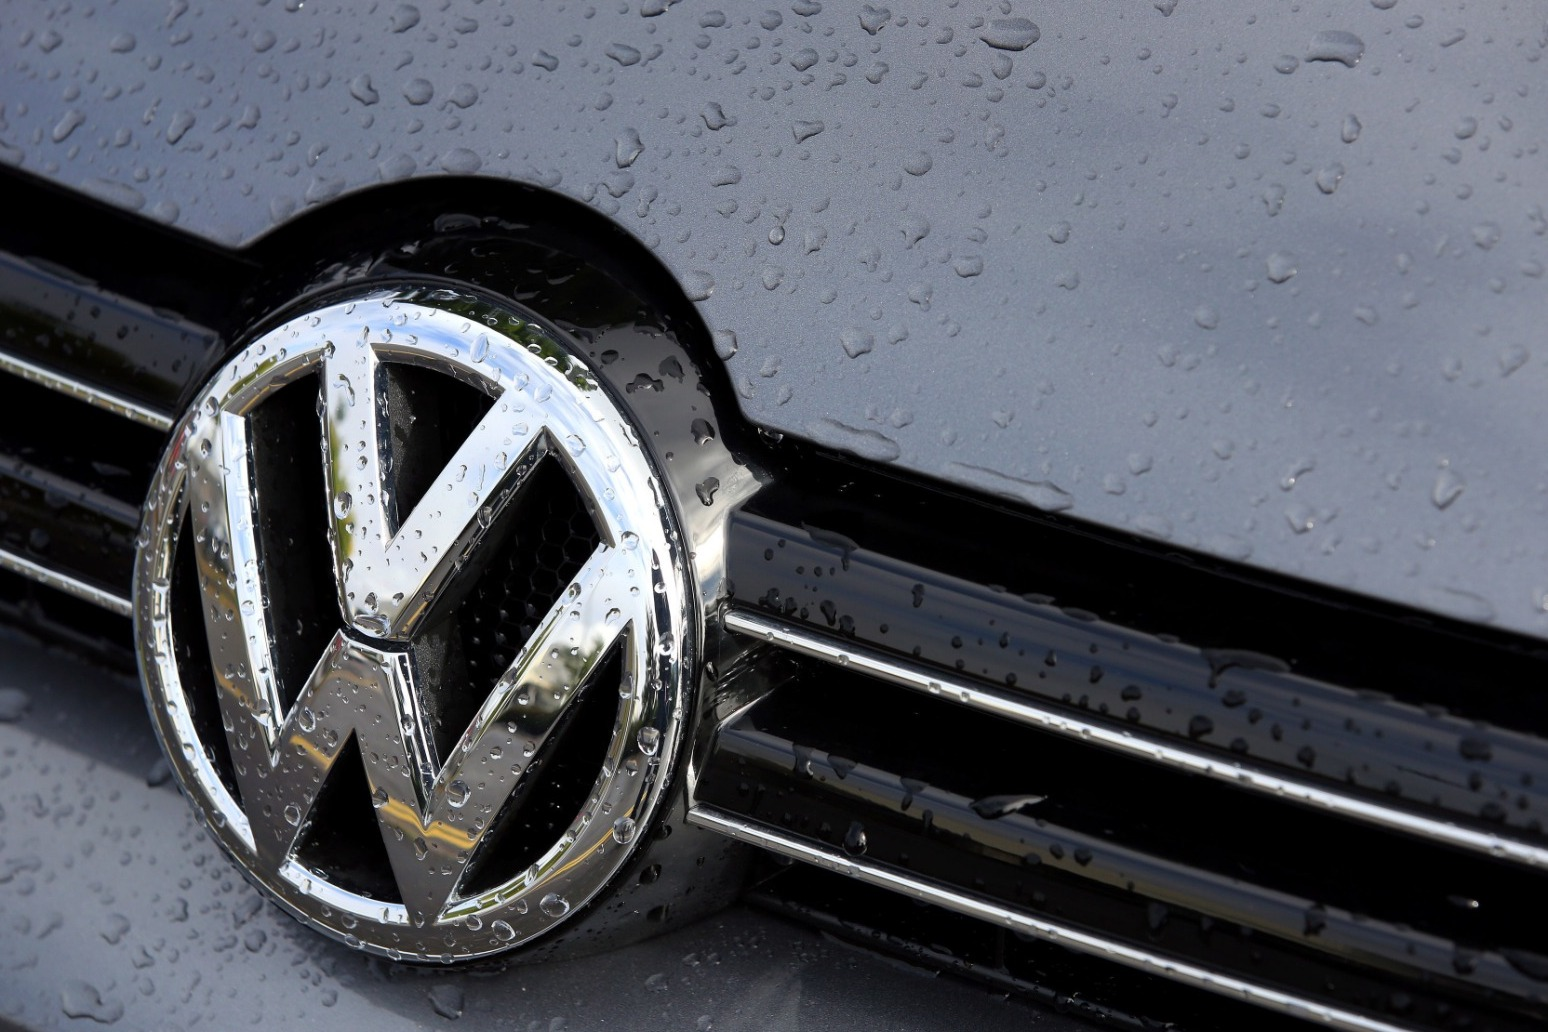 VOLKSWAGEN \'CHEATED\' EMISSIONS STANDARDS DESIGNED \'TO SAVE LIVES\', COURT TOLD